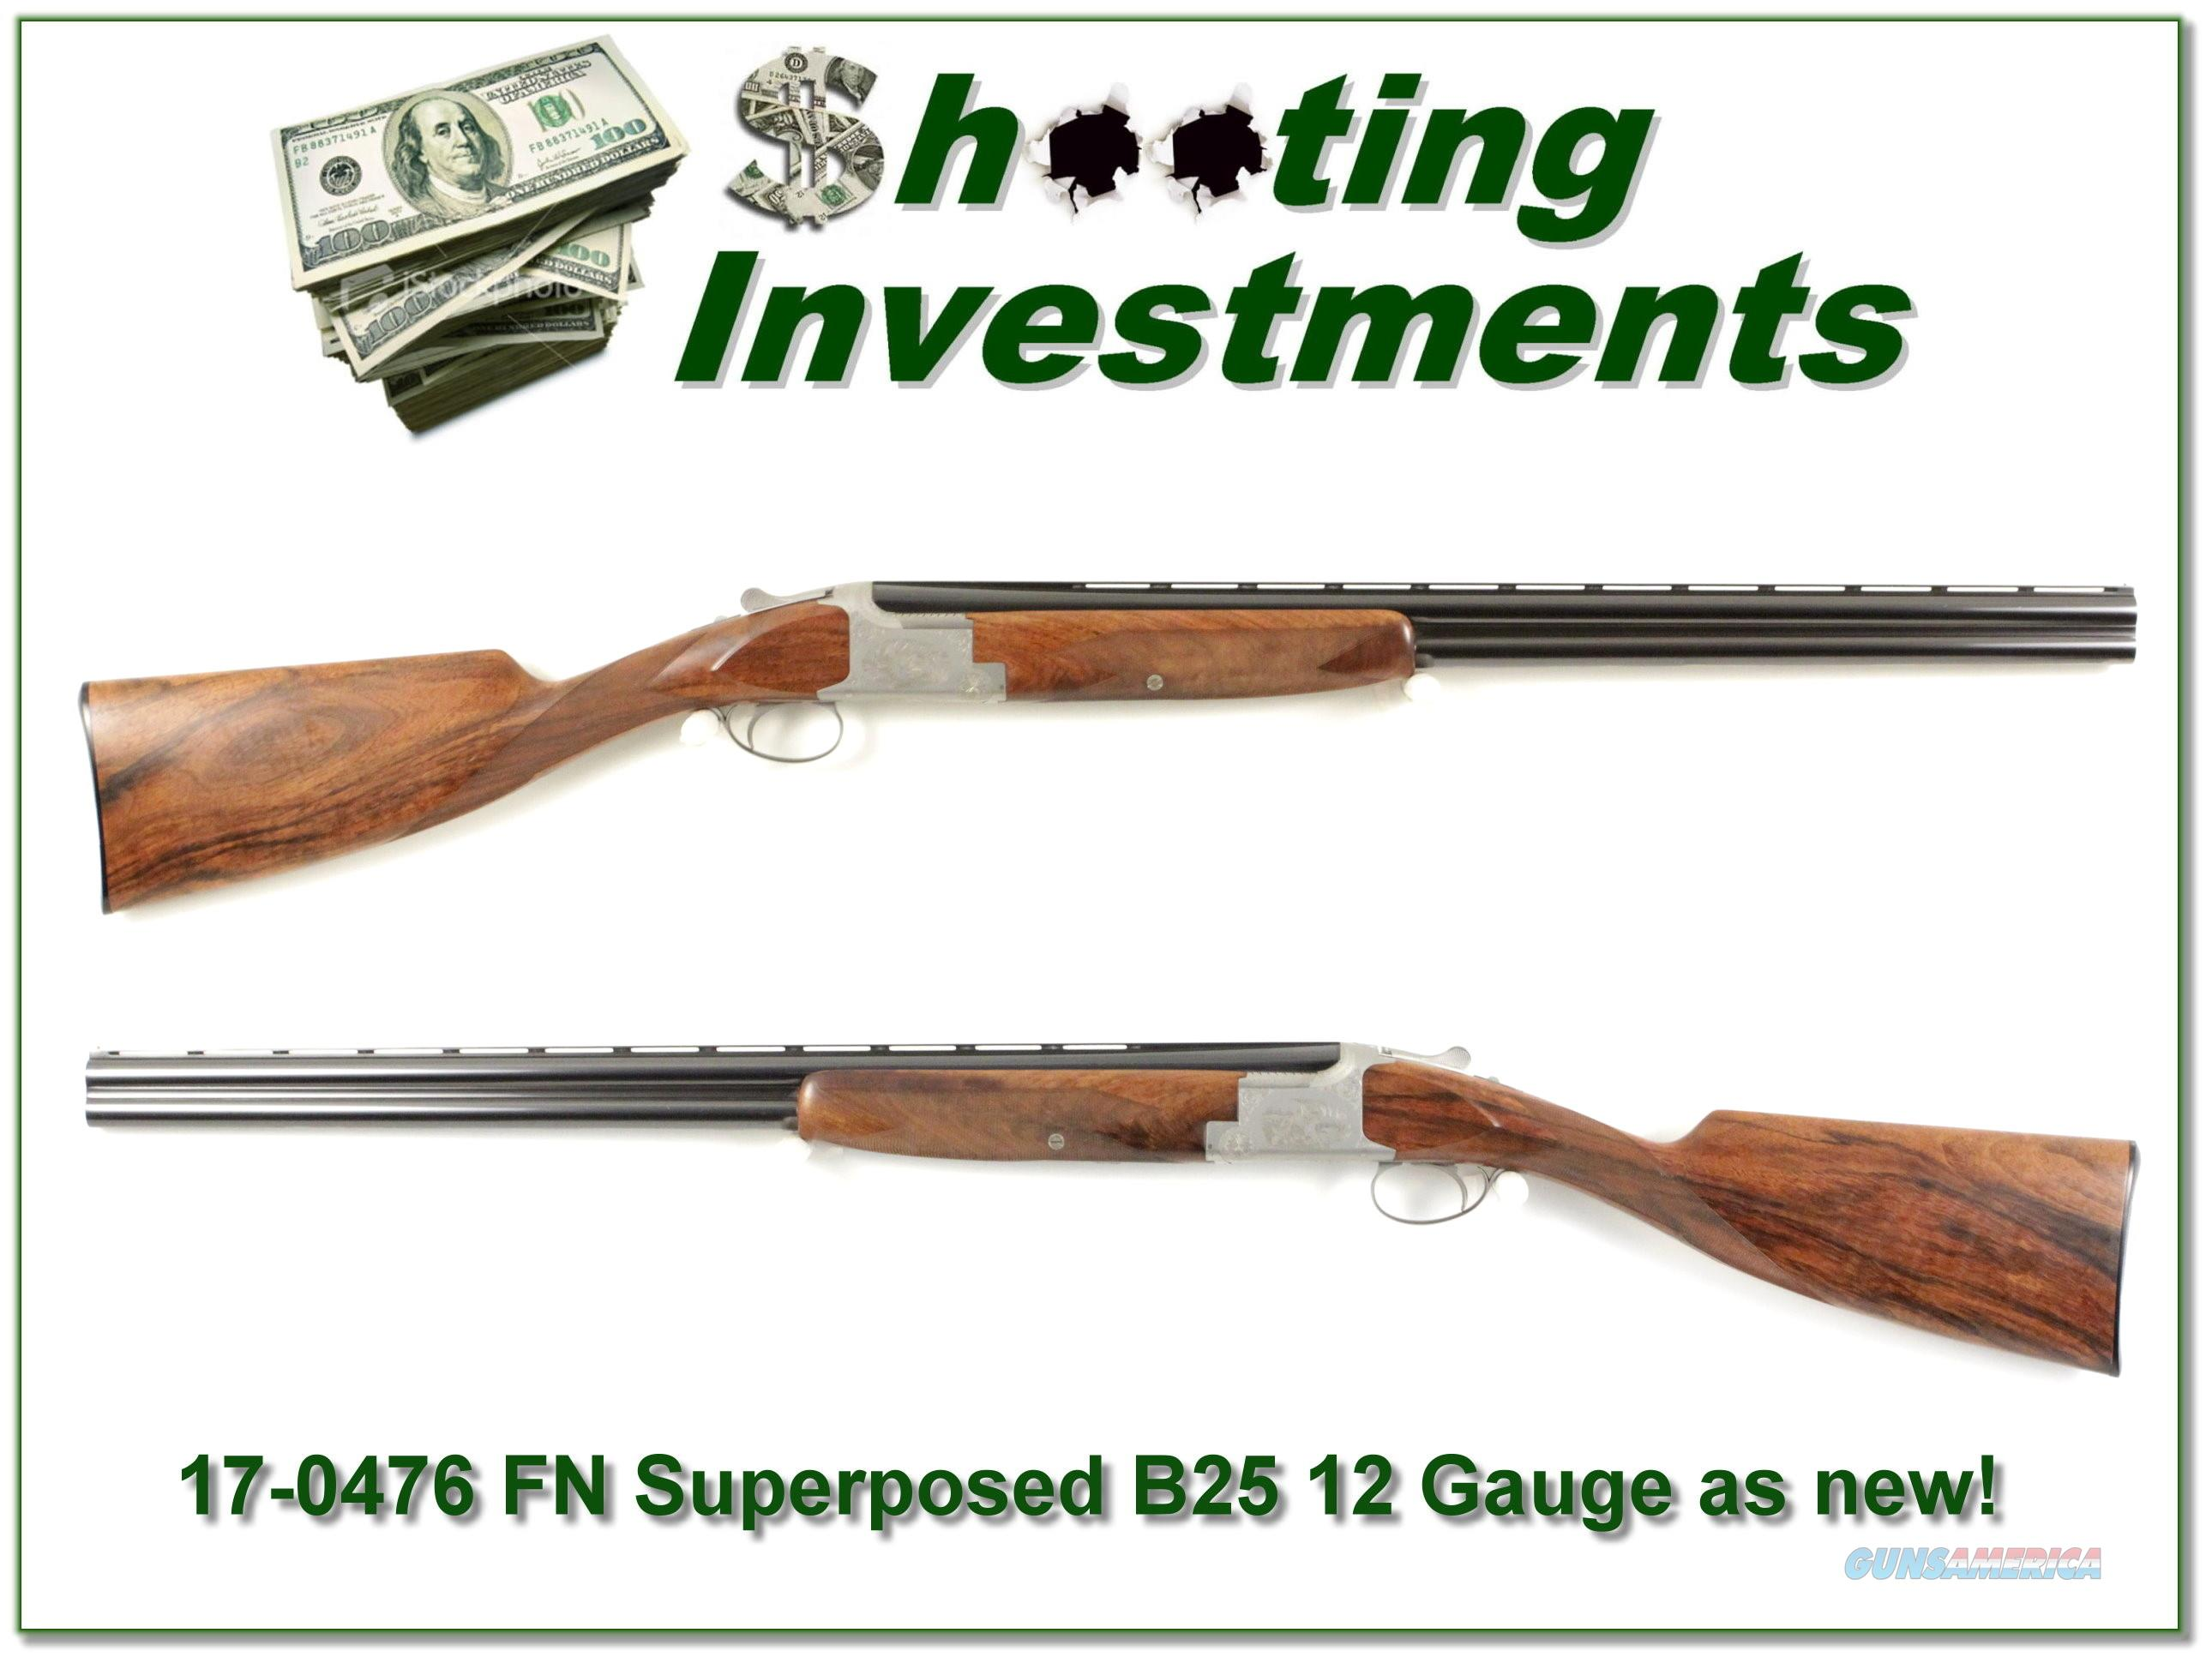 FN by Browning Superposed B25 12 Gauge Exceptional!  Guns > Shotguns > Browning Shotguns > Over Unders > Belgian Manufacture